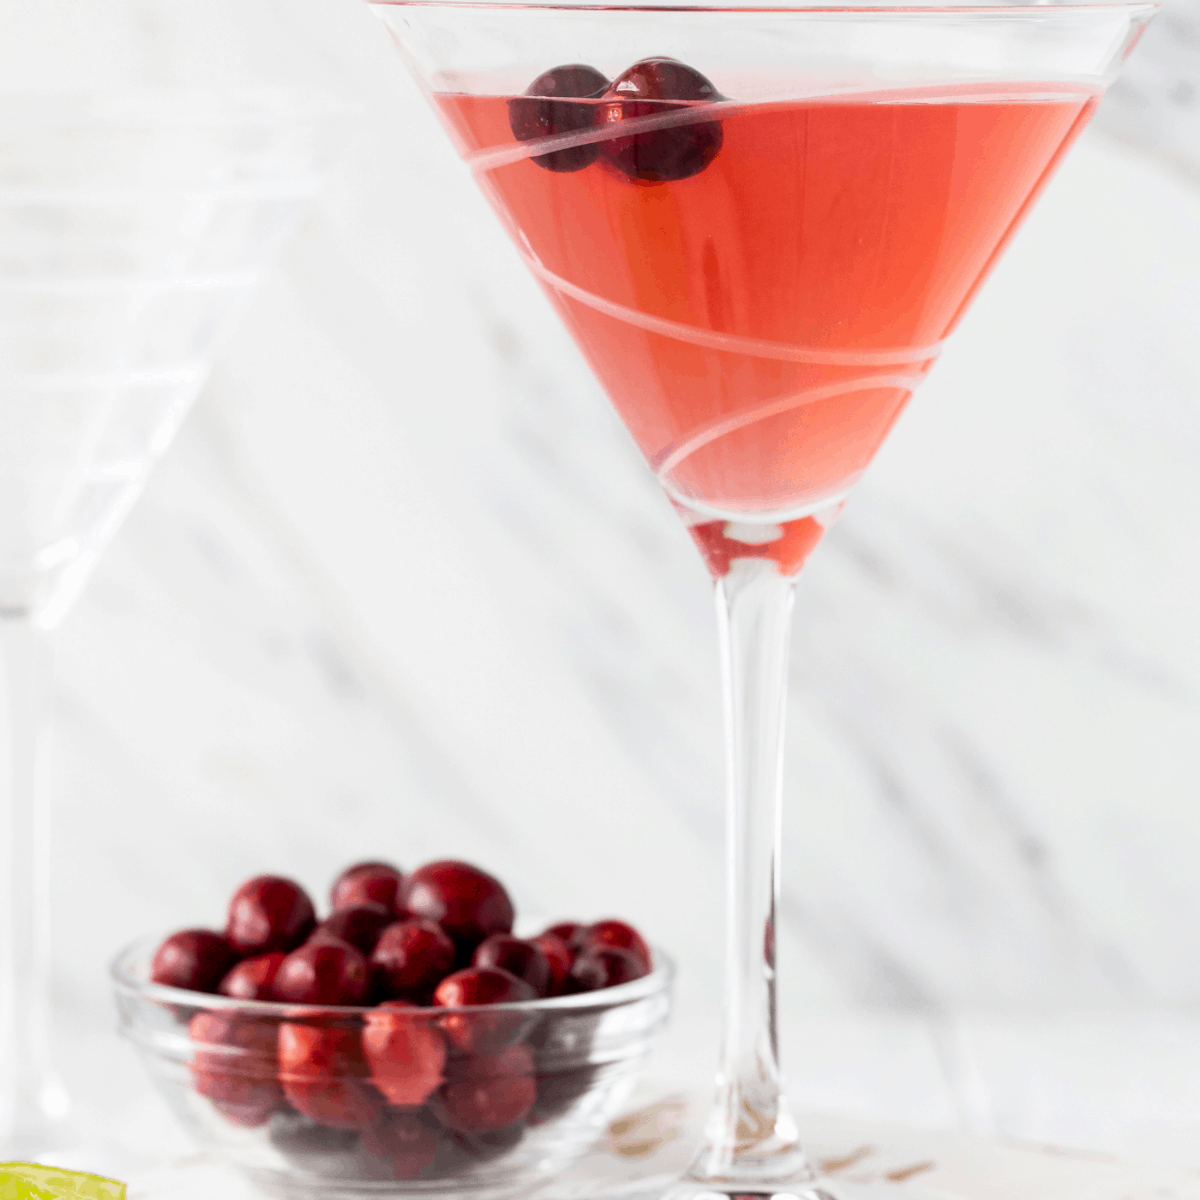 martini glass filled with pink drink.